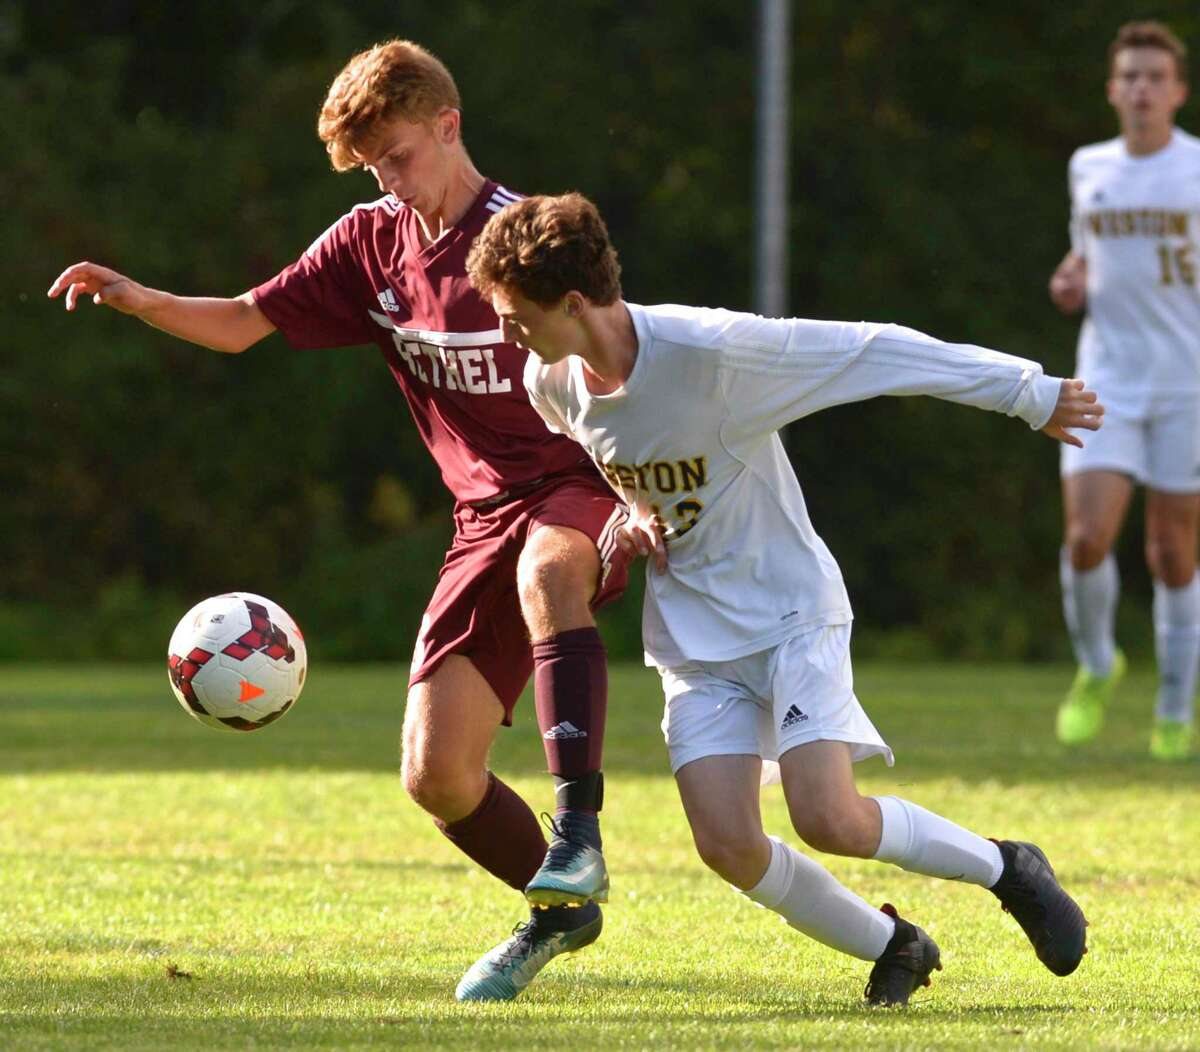 Boys soccer game between Weston and Bethel high schools, Tuesday, September 24, 2019, at Rourke Field, Bethel, Conn.